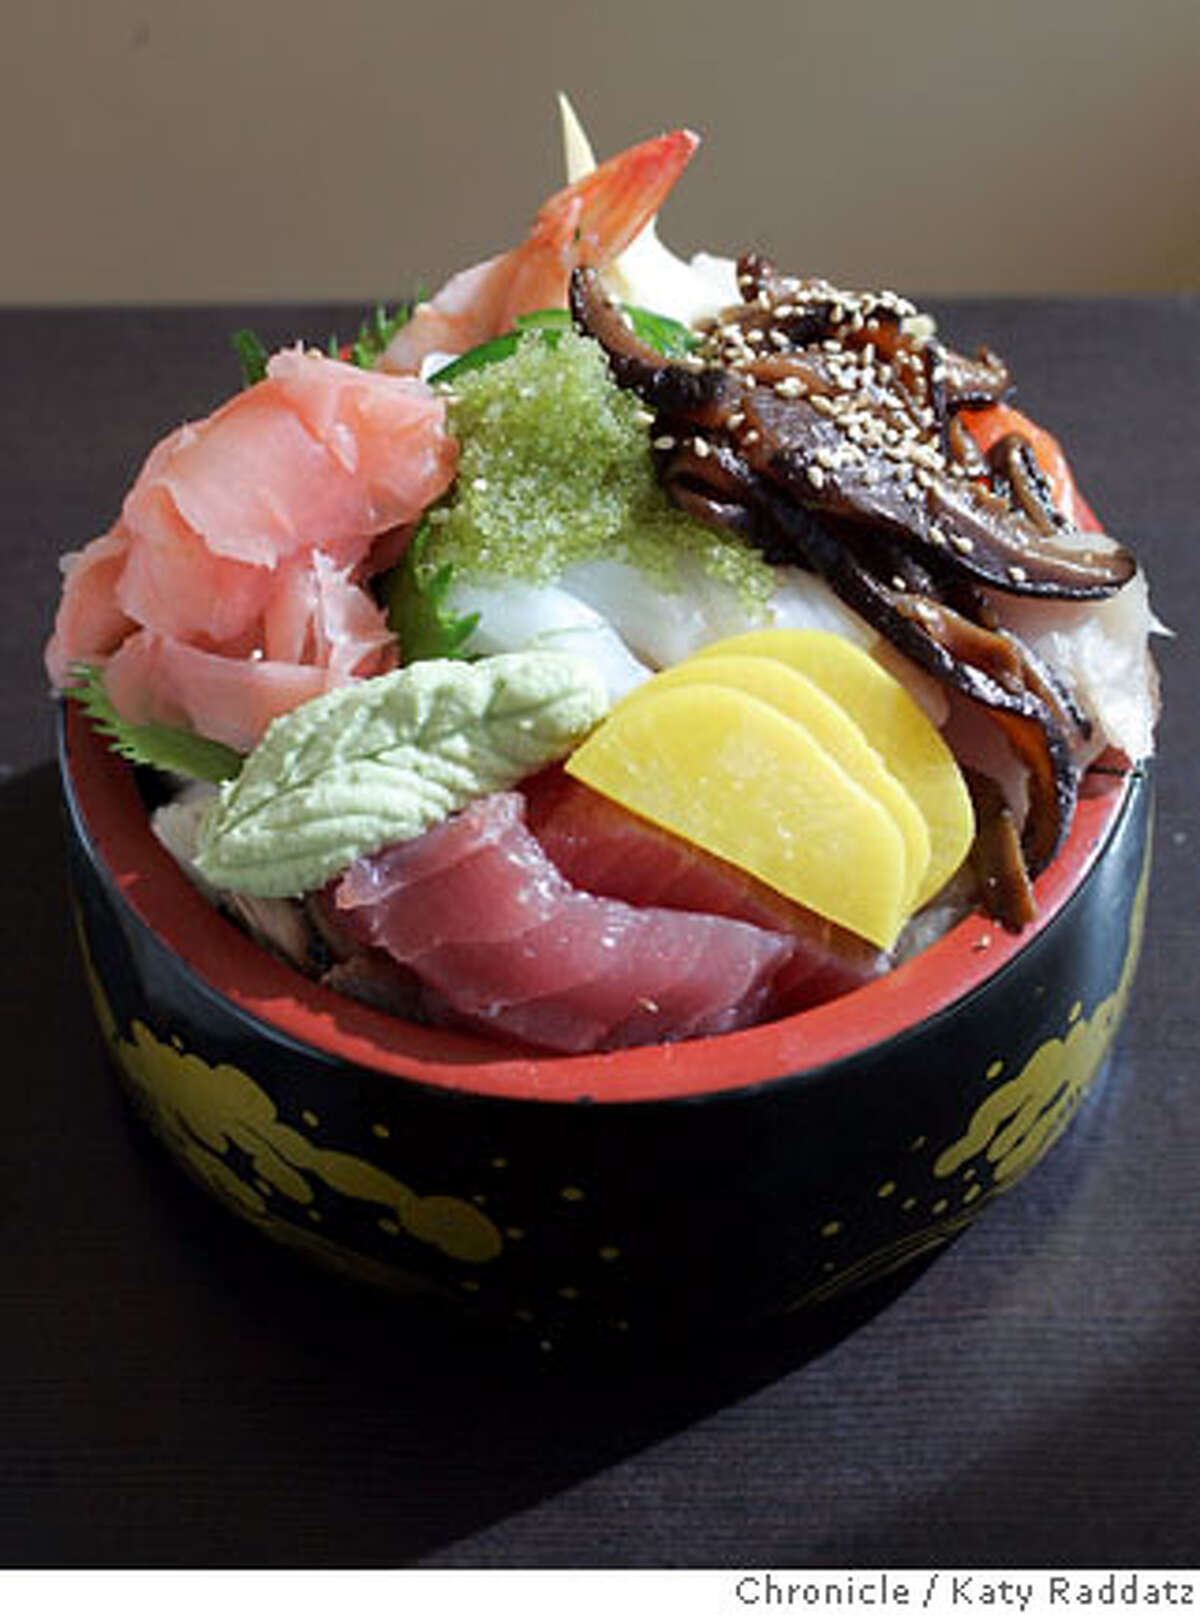 BARGAIN15_008_RAD.jpg SHOWN: A lovely Chirashi Bowl at Ichiro Sushi, at 412 15th St. in Oakland, a small sushi bar with a great sake list and great sushi. These pictures were made on Monday, Feb. 5, 2007, in Oakland, CA. (Katy Raddatz/SF Chronicle) **Ichiro Sushi, Chirashi